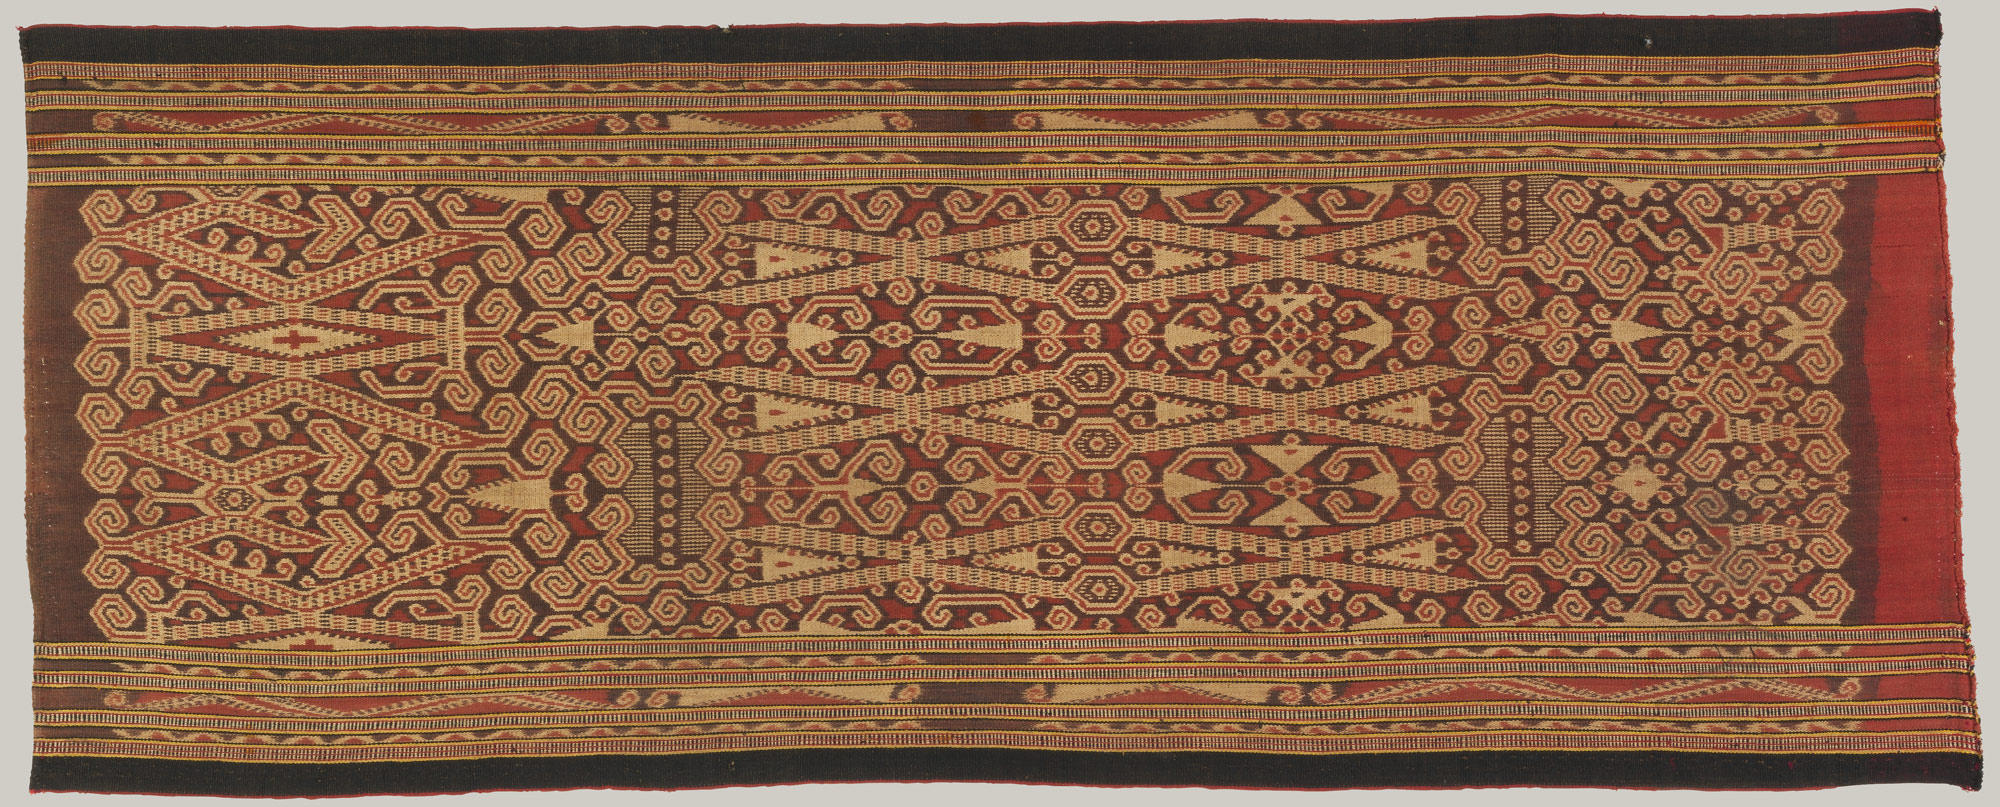 Womans ceremonial skirt (kain kebat)